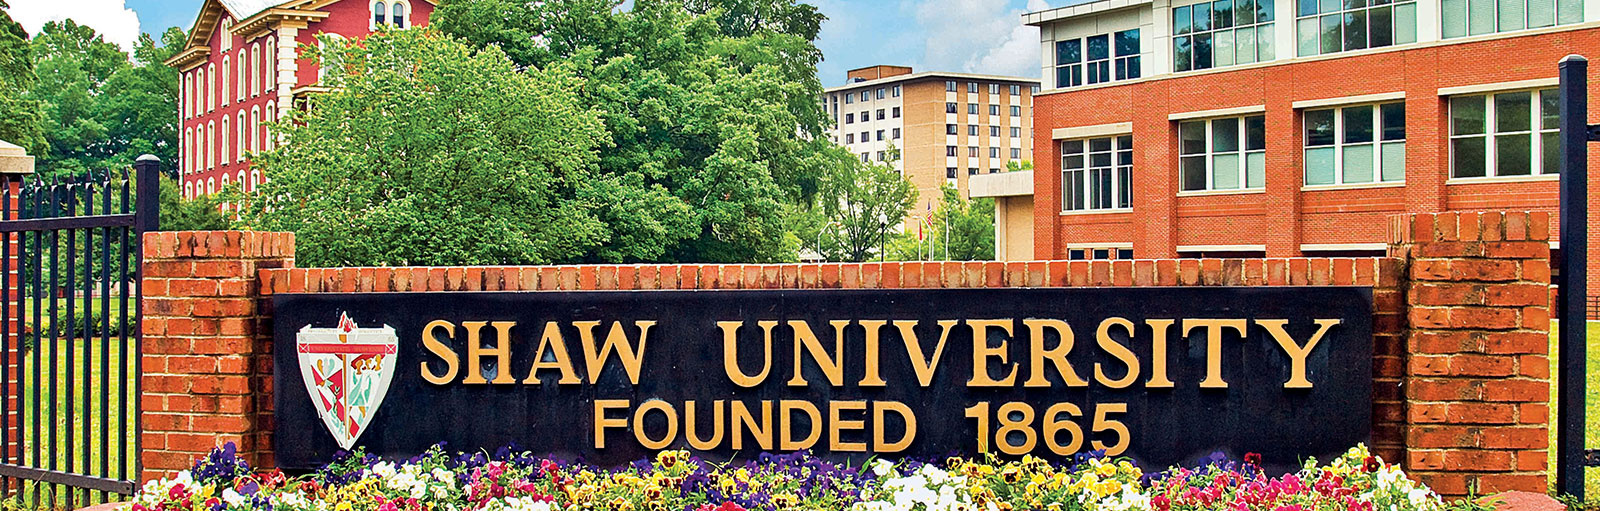 Shaw University Entrance Sign